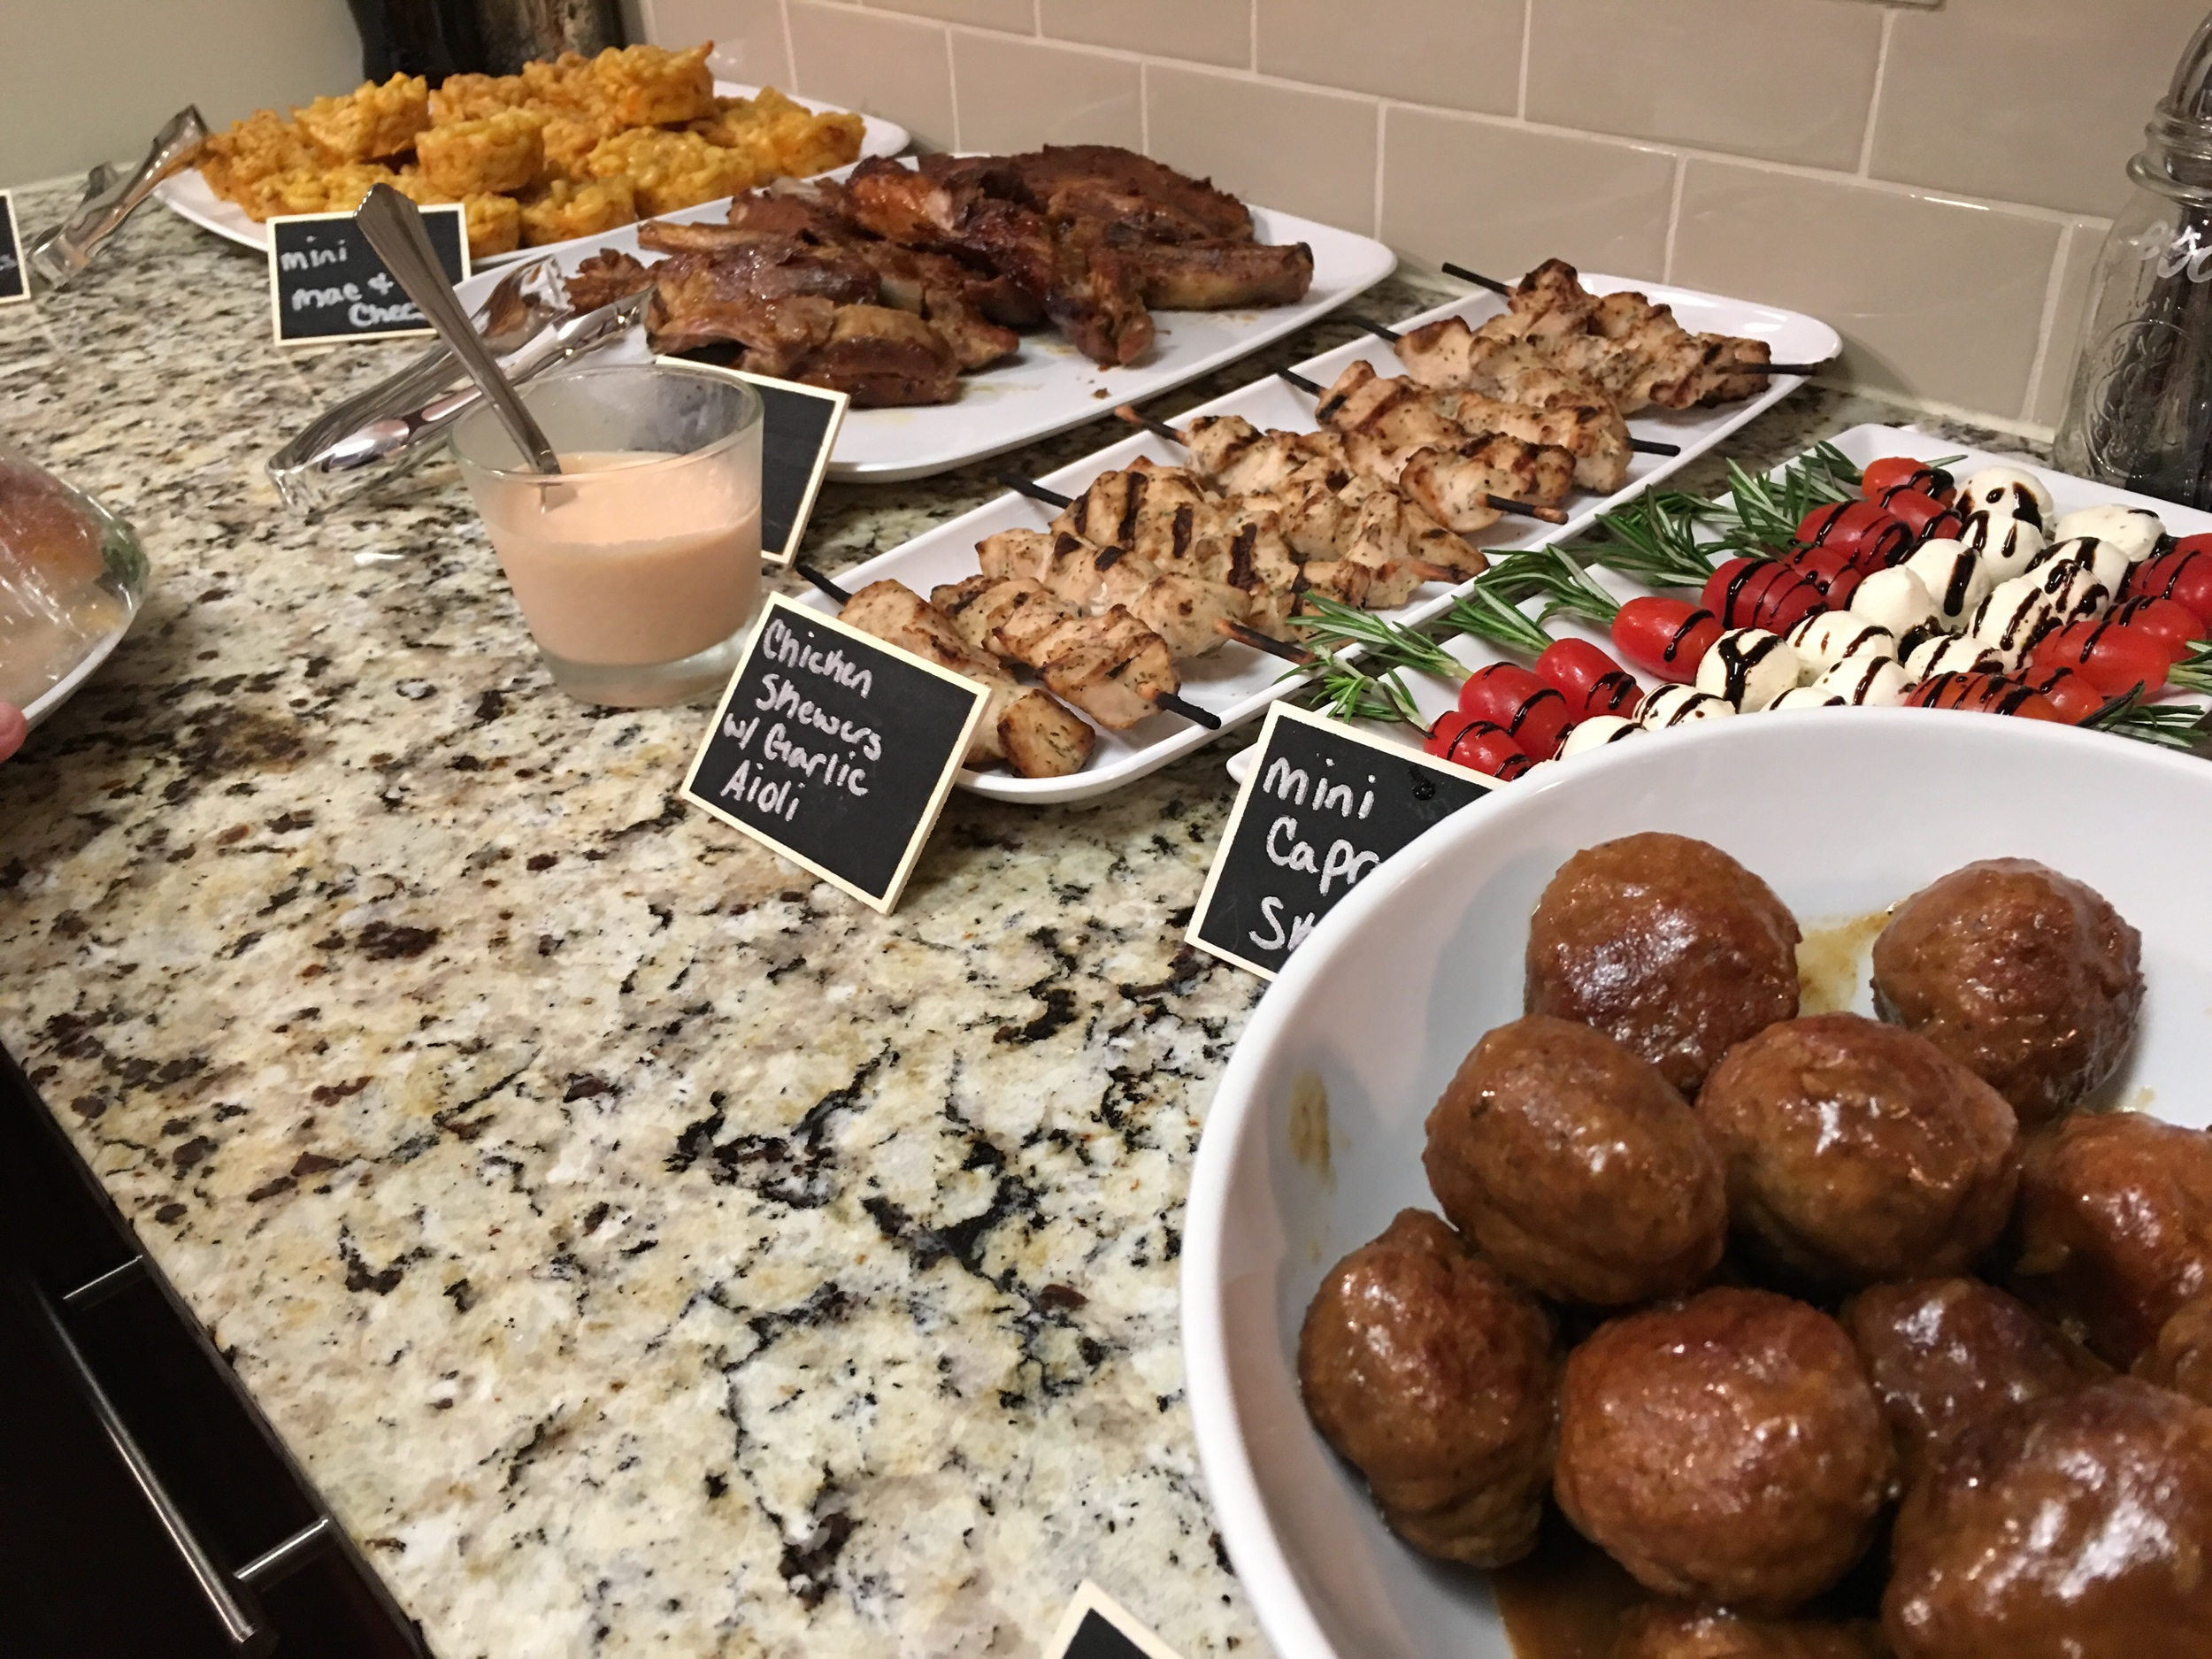 sam-c-perry-tips-for-throwing-the-ultimate-house-party-food-spread.jpg